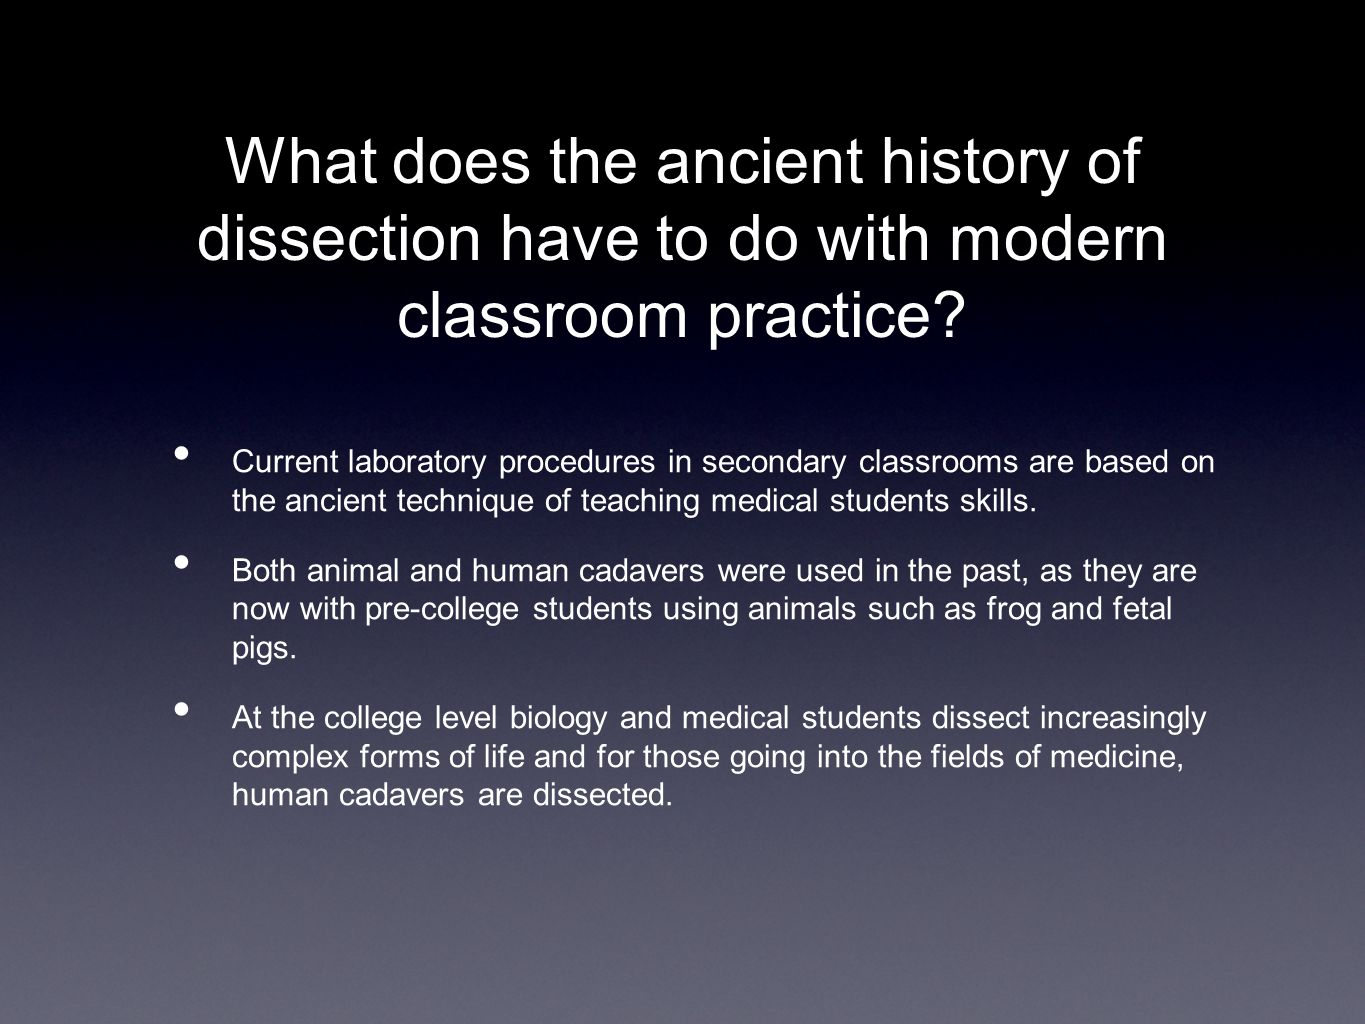 What does the ancient history of dissection have to do with modern classroom practice? Current laboratory procedures in secondary classrooms are based